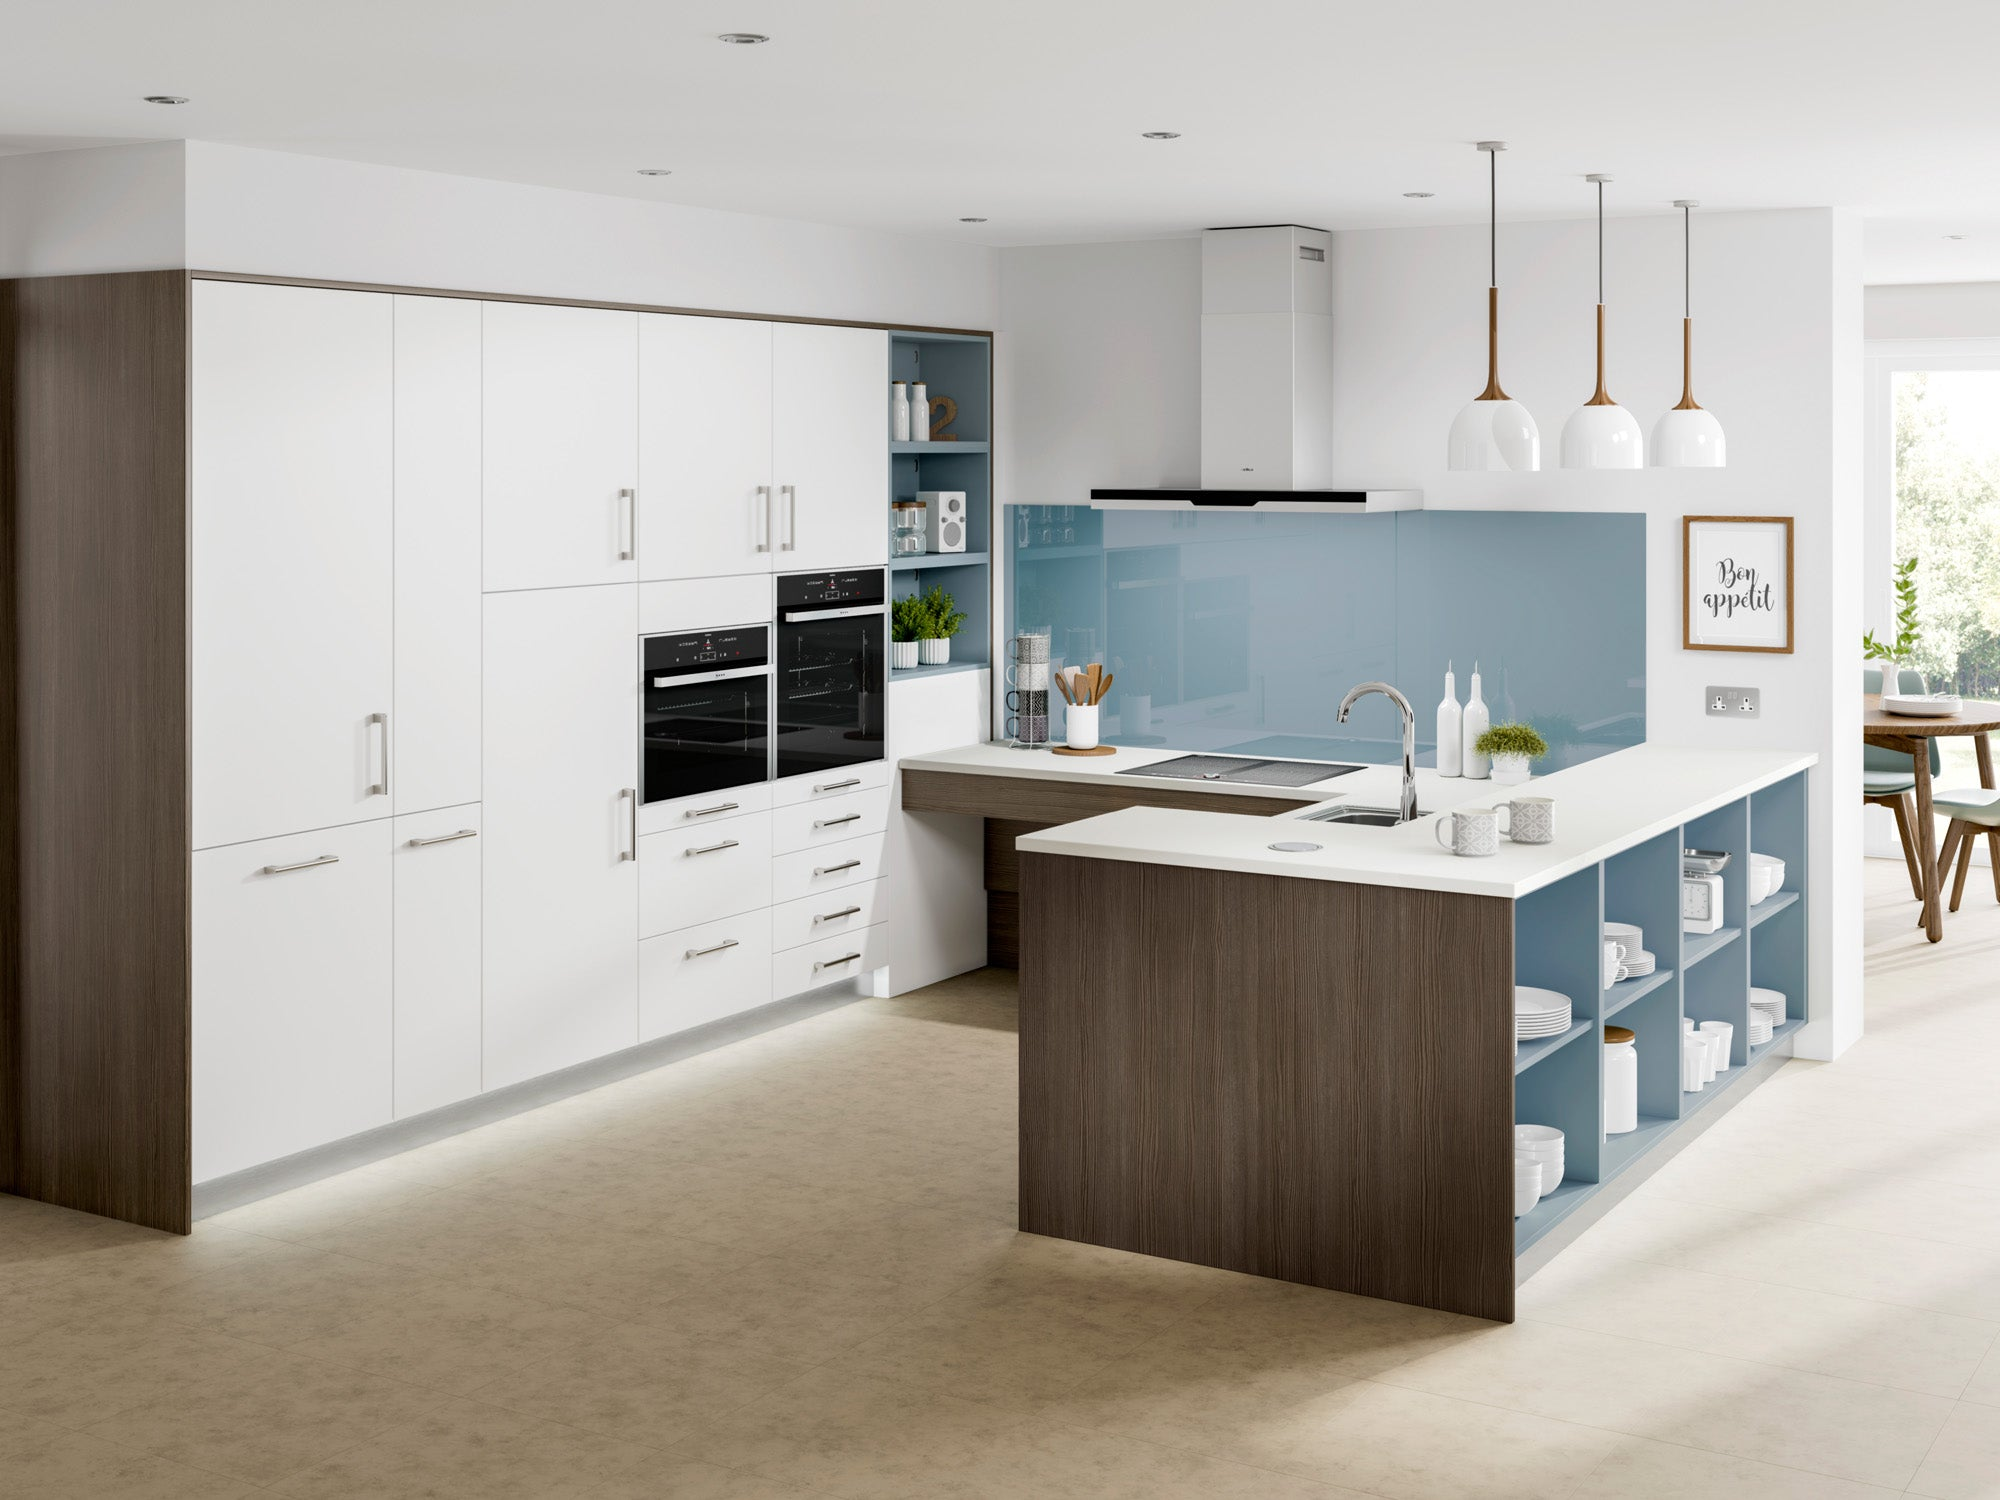 Blue and white accessible kitchen with easy to reach storage and appliances